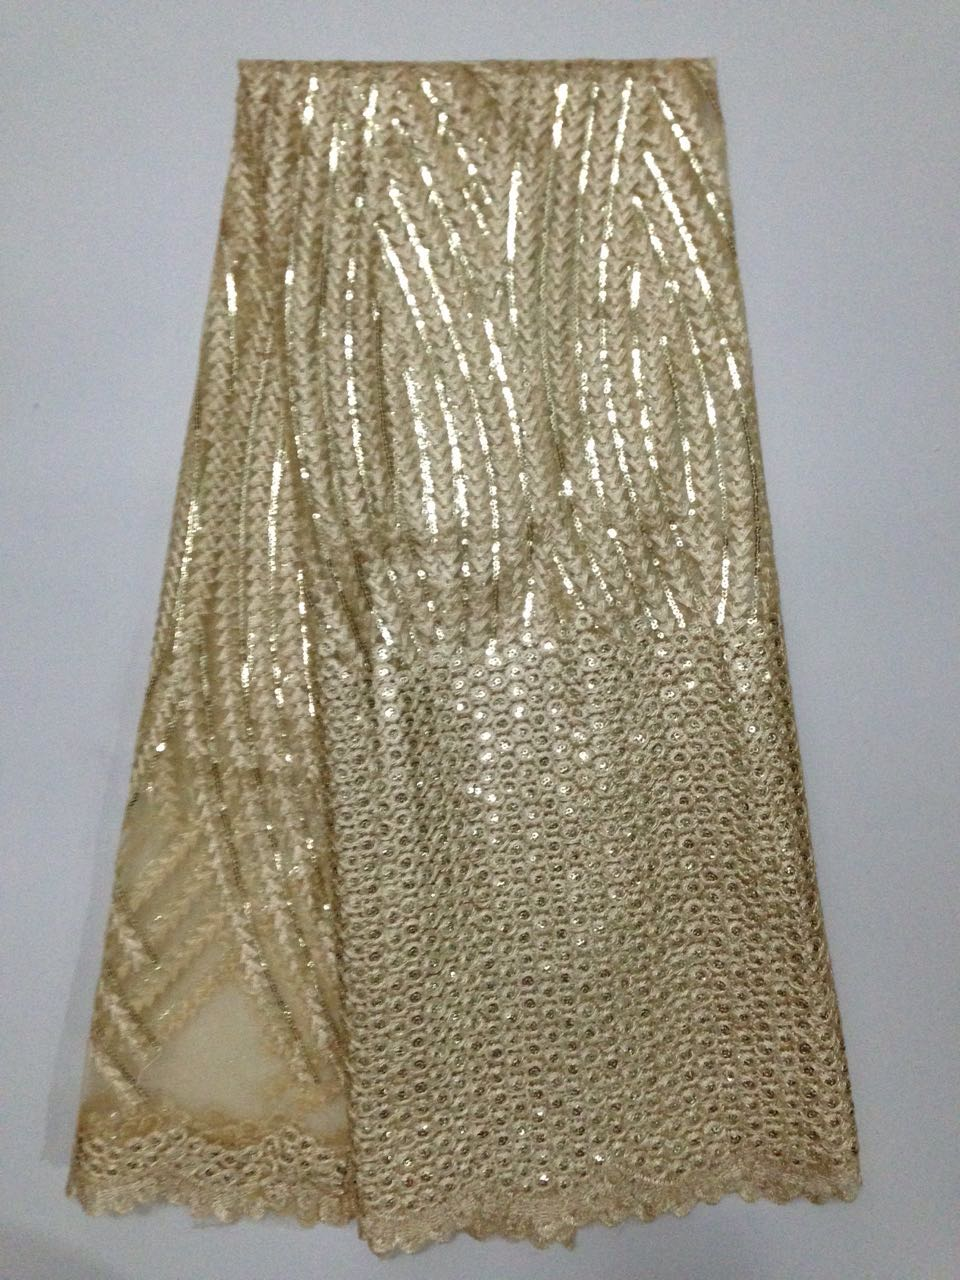 African French Net Lace Fabric gold thread lace beaded fabric Wedding Dress MJKY319K - MJKY Bud silk textile company store